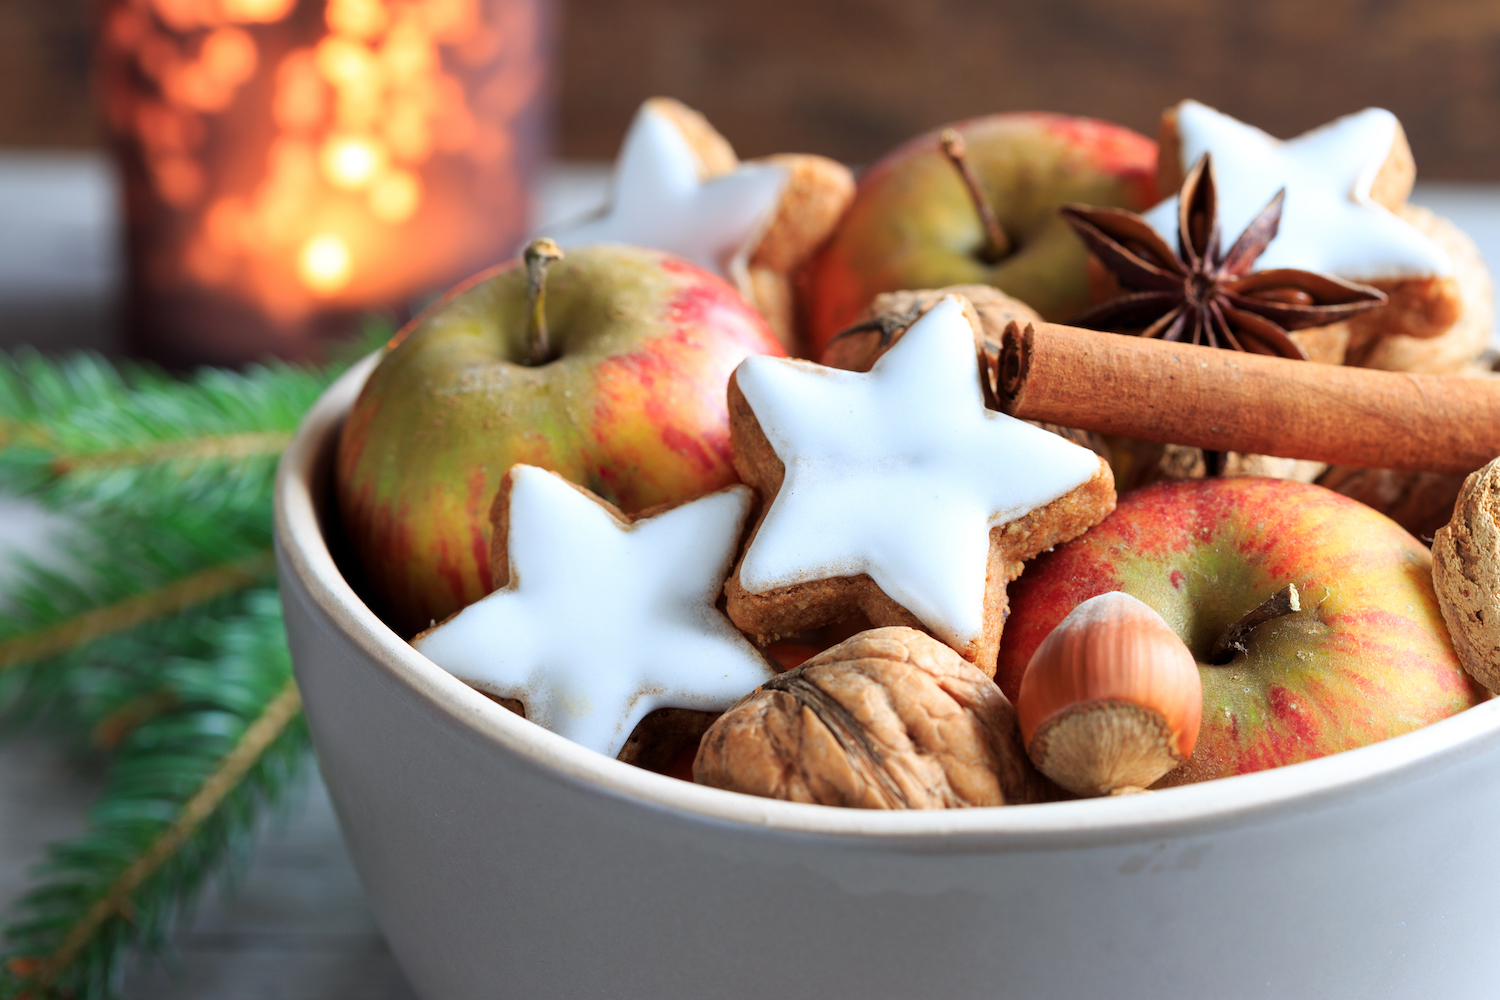 gingerbread, apples and cinnamon